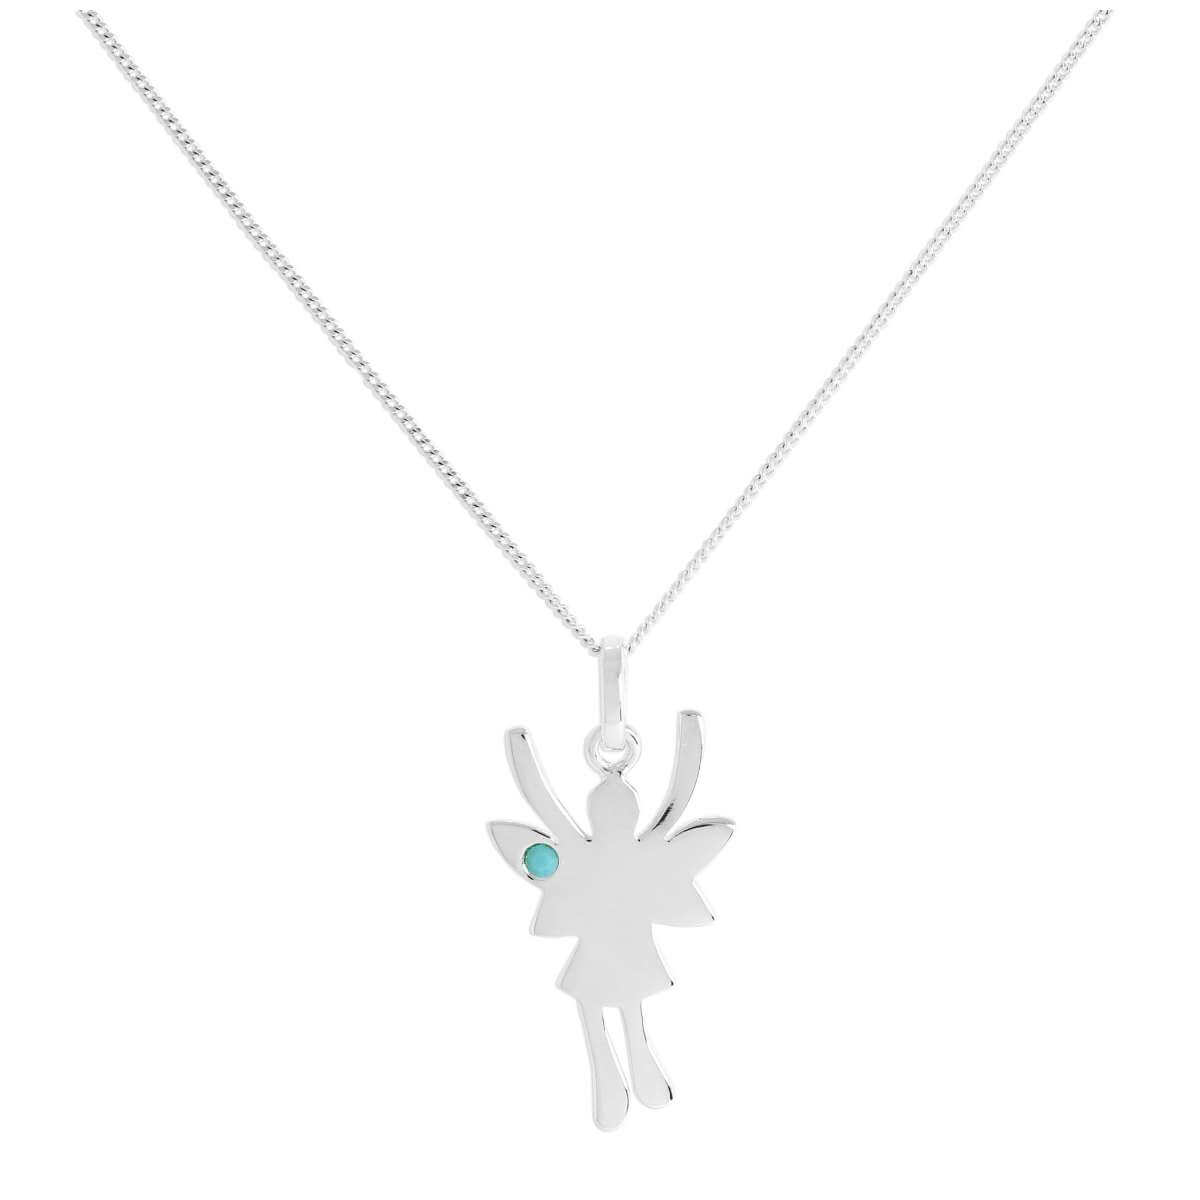 Sterling Silver & Turquoise CZ Crystal December Birthstone Funky Fairy Pendant Necklace 14 - 32 Inches